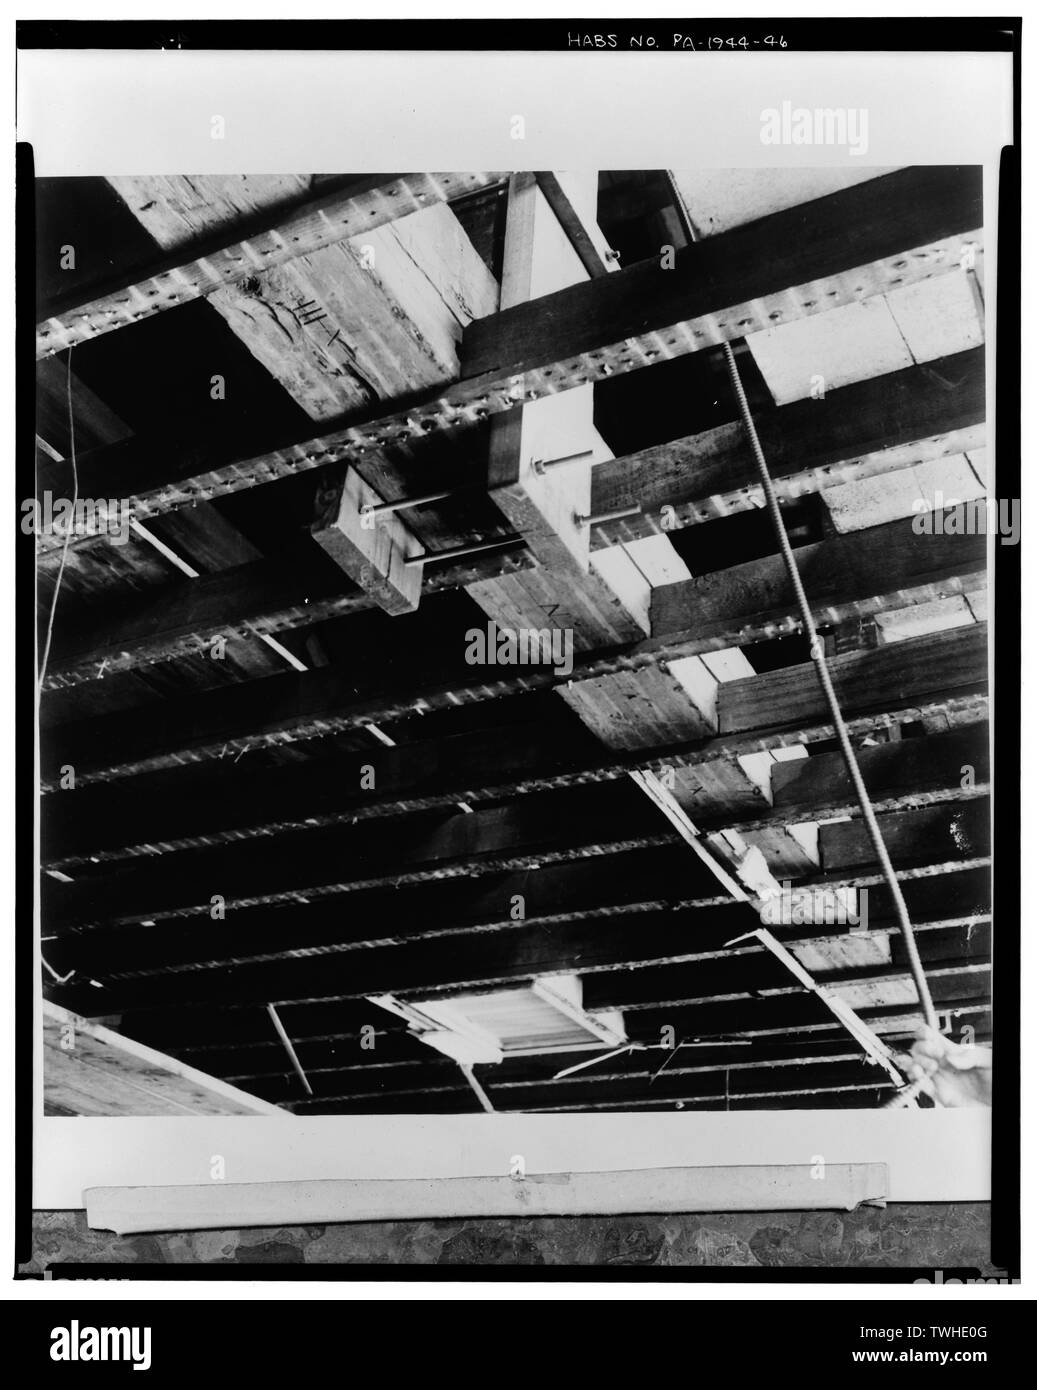 SECOND FLOOR CEILING FRAMING. The 1812 furring strips are still in place, fastened to the undersides of the 1755 joists. The joists frame into the bottom chords of the 1755 salvaged trusses. Note the numerals, VIII (8), N (9), X (10), and XI (11) on alternate panels of the bottom chord of the truss. Between the reinforcing plates note the numeral VII (7), added for the 1812 installation - Twelfth Street Meeting House, 20 South Twelfth Street, Philadelphia, Philadelphia County, PA - Stock Image